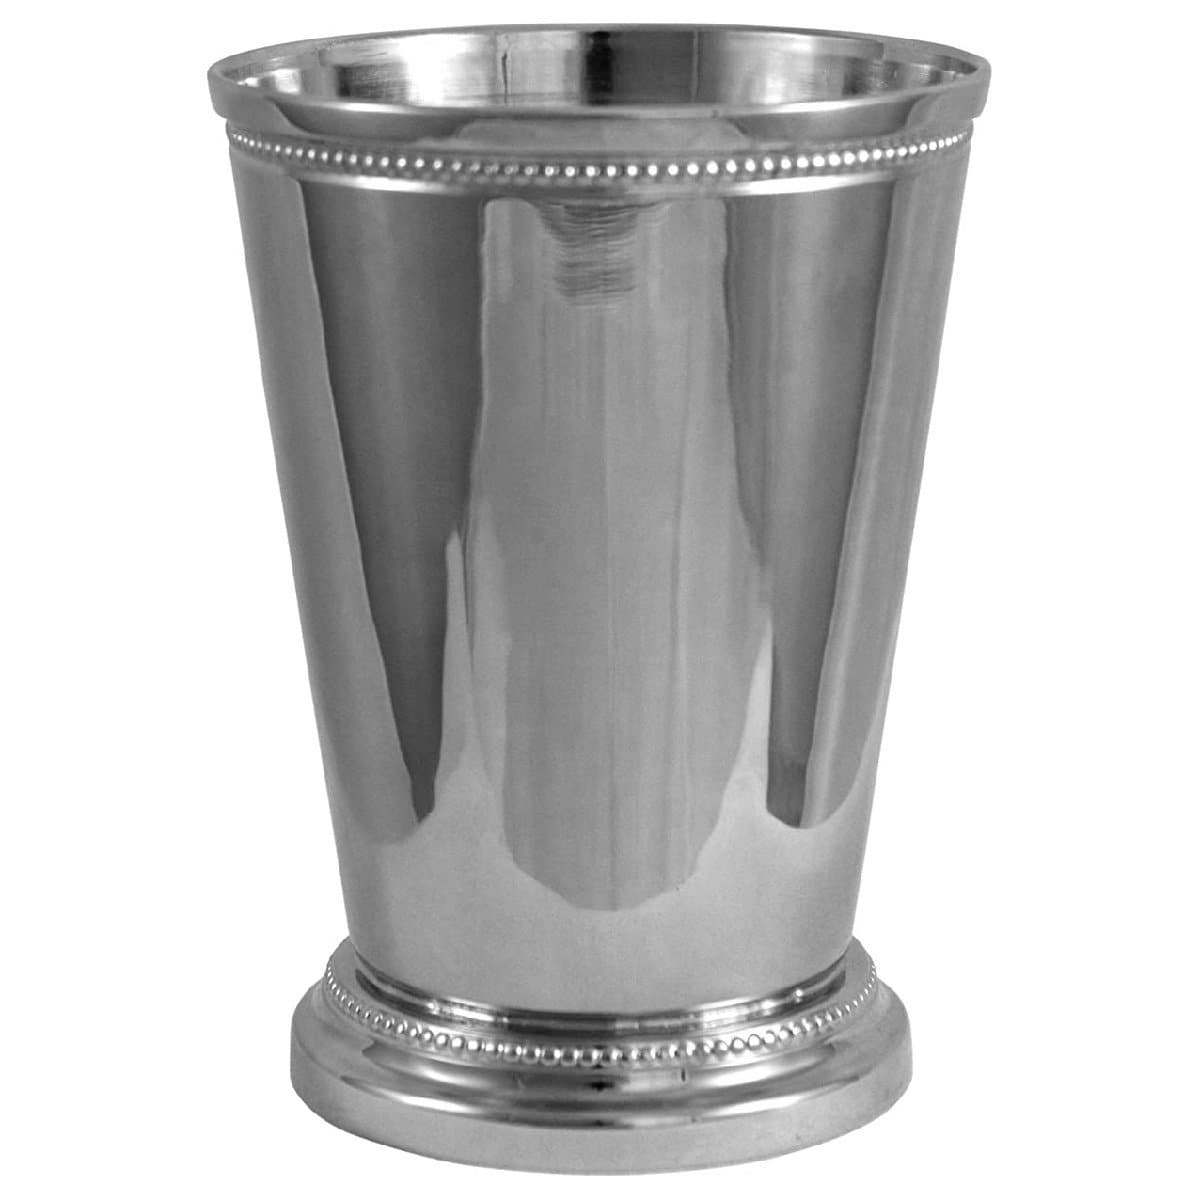 Brass Julep Cup Pen Holder, Large 12cm, Silver Plated